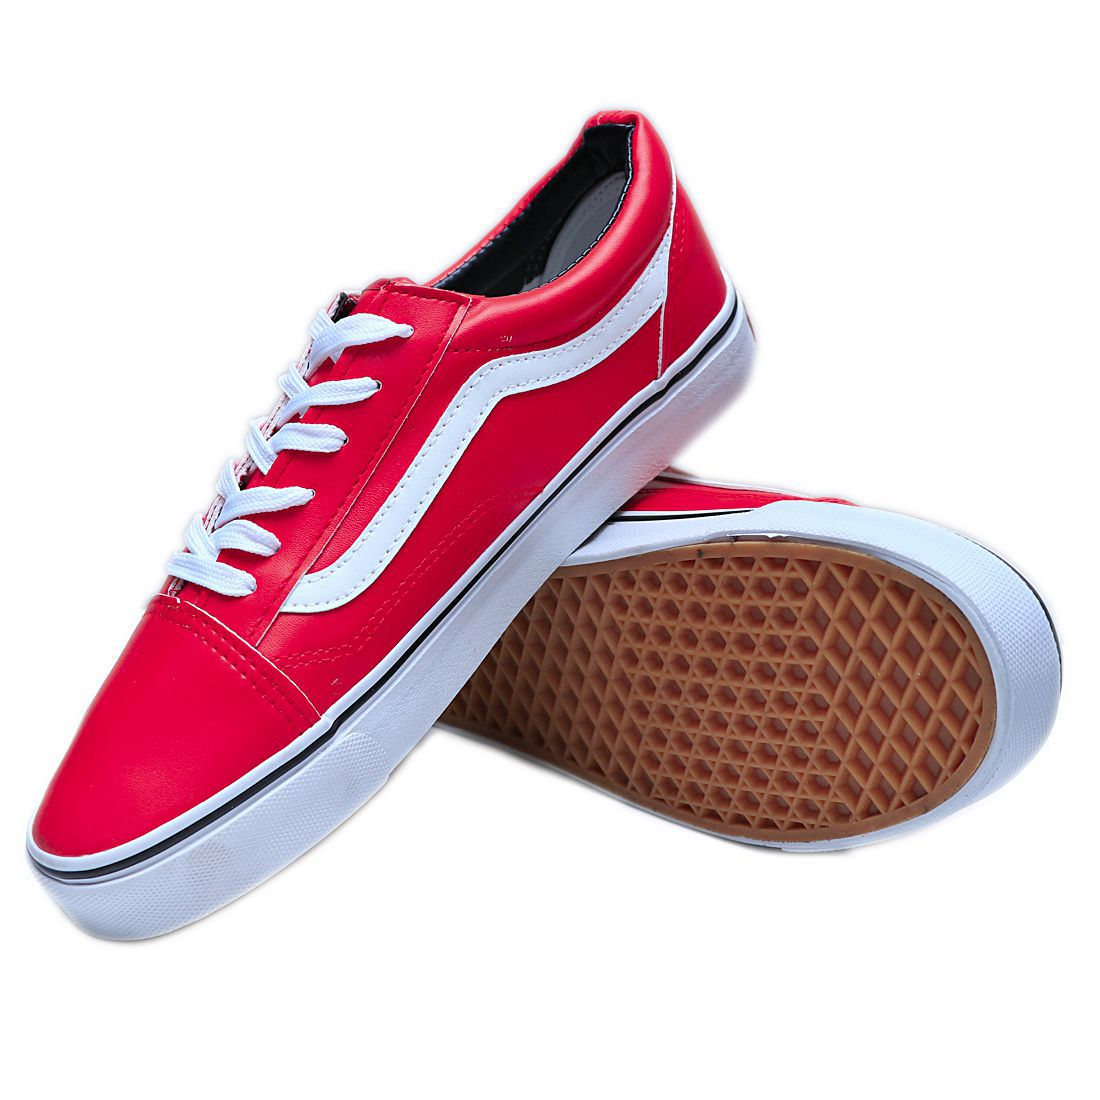 VANS OLD SKOOL FASHION LEATHER Sneakers Red Casual Shoes - Buy VANS ... 50b2989a6